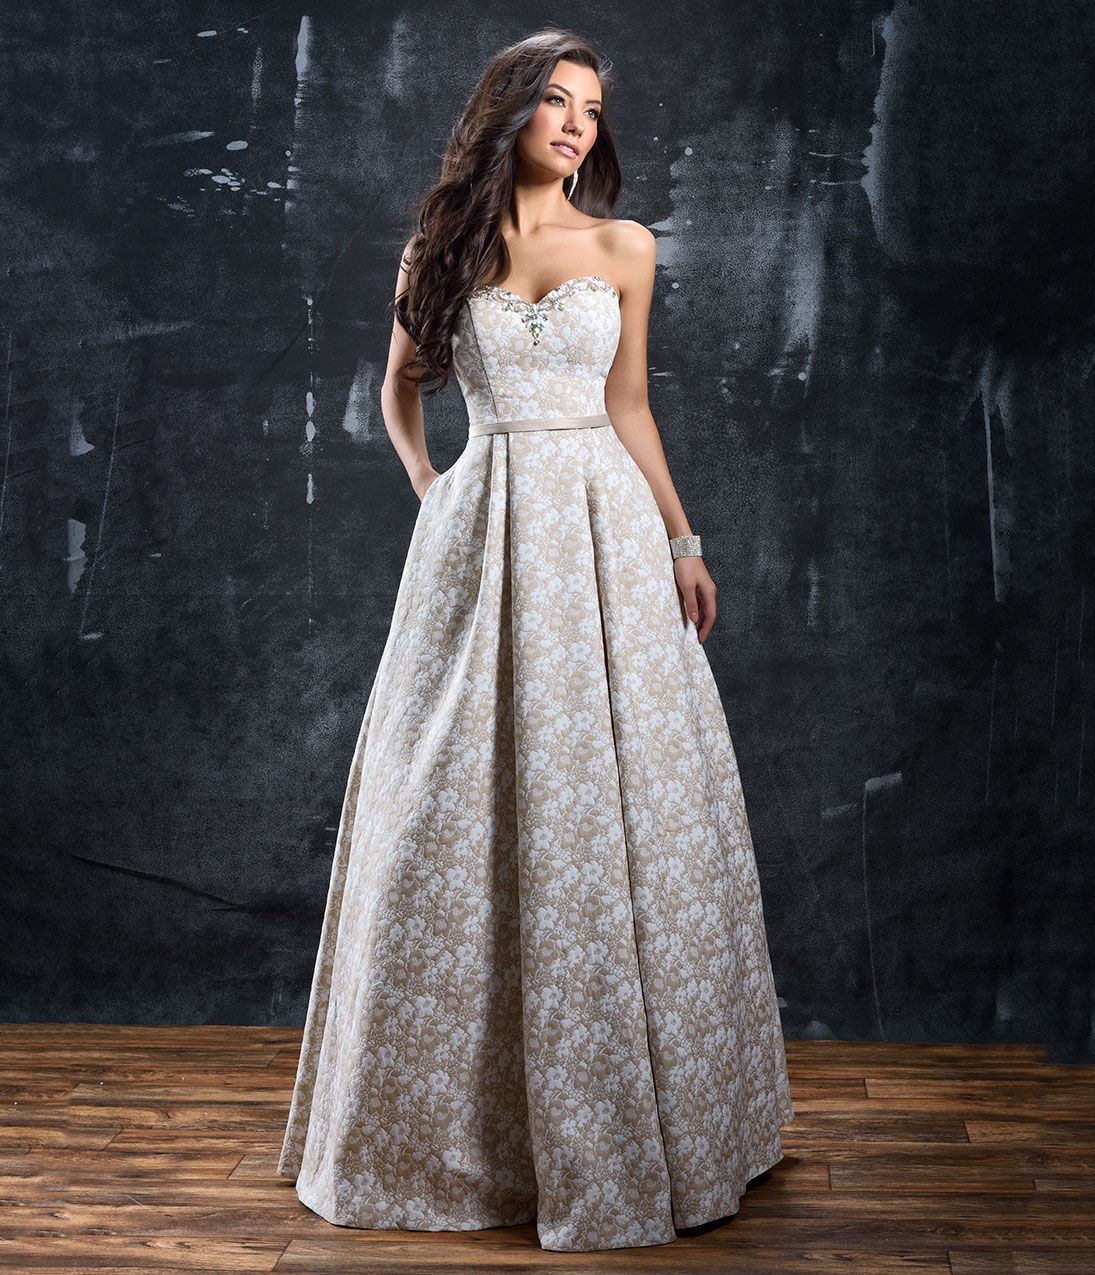 Vintage Inspired Evening Dresses, Gowns and Formal Wear | Strapless ...